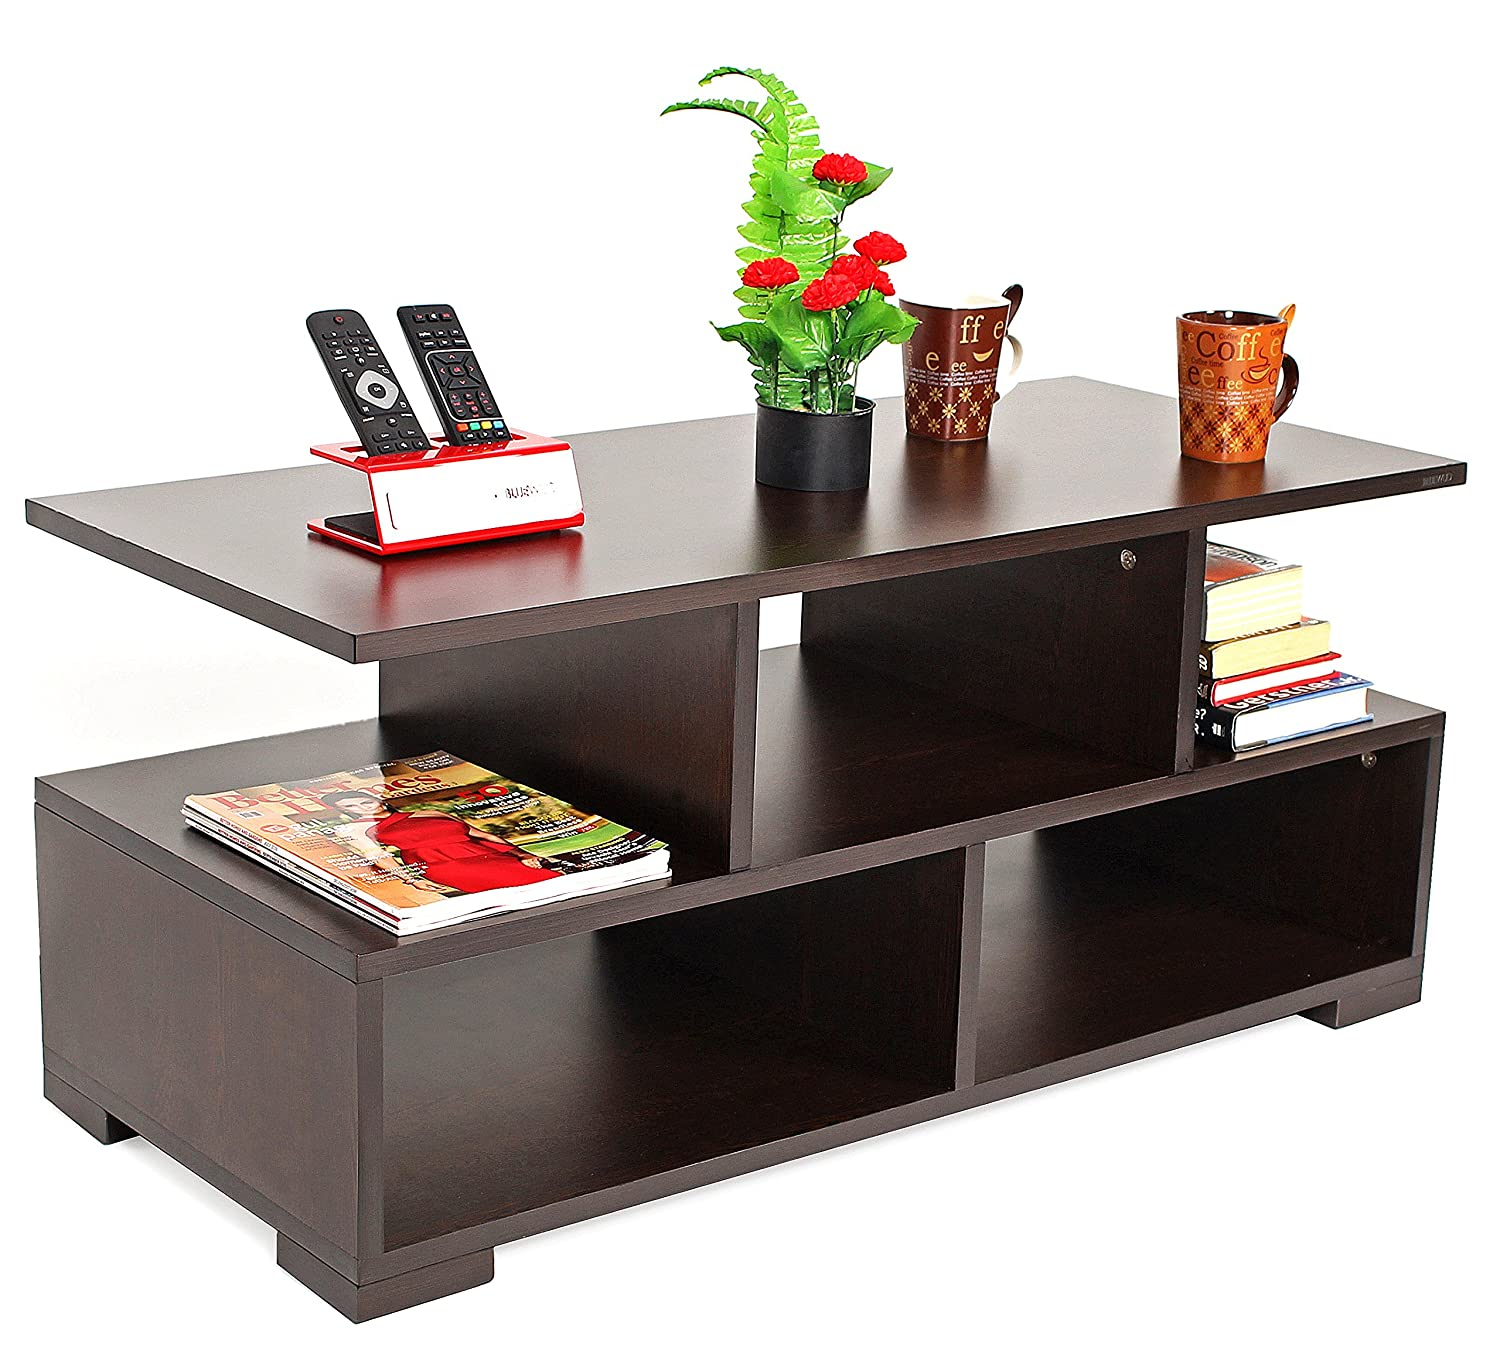 Coffee tables buy wooden coffee tables online in india best bluewud victor coffee table with shelves wenge geotapseo Choice Image